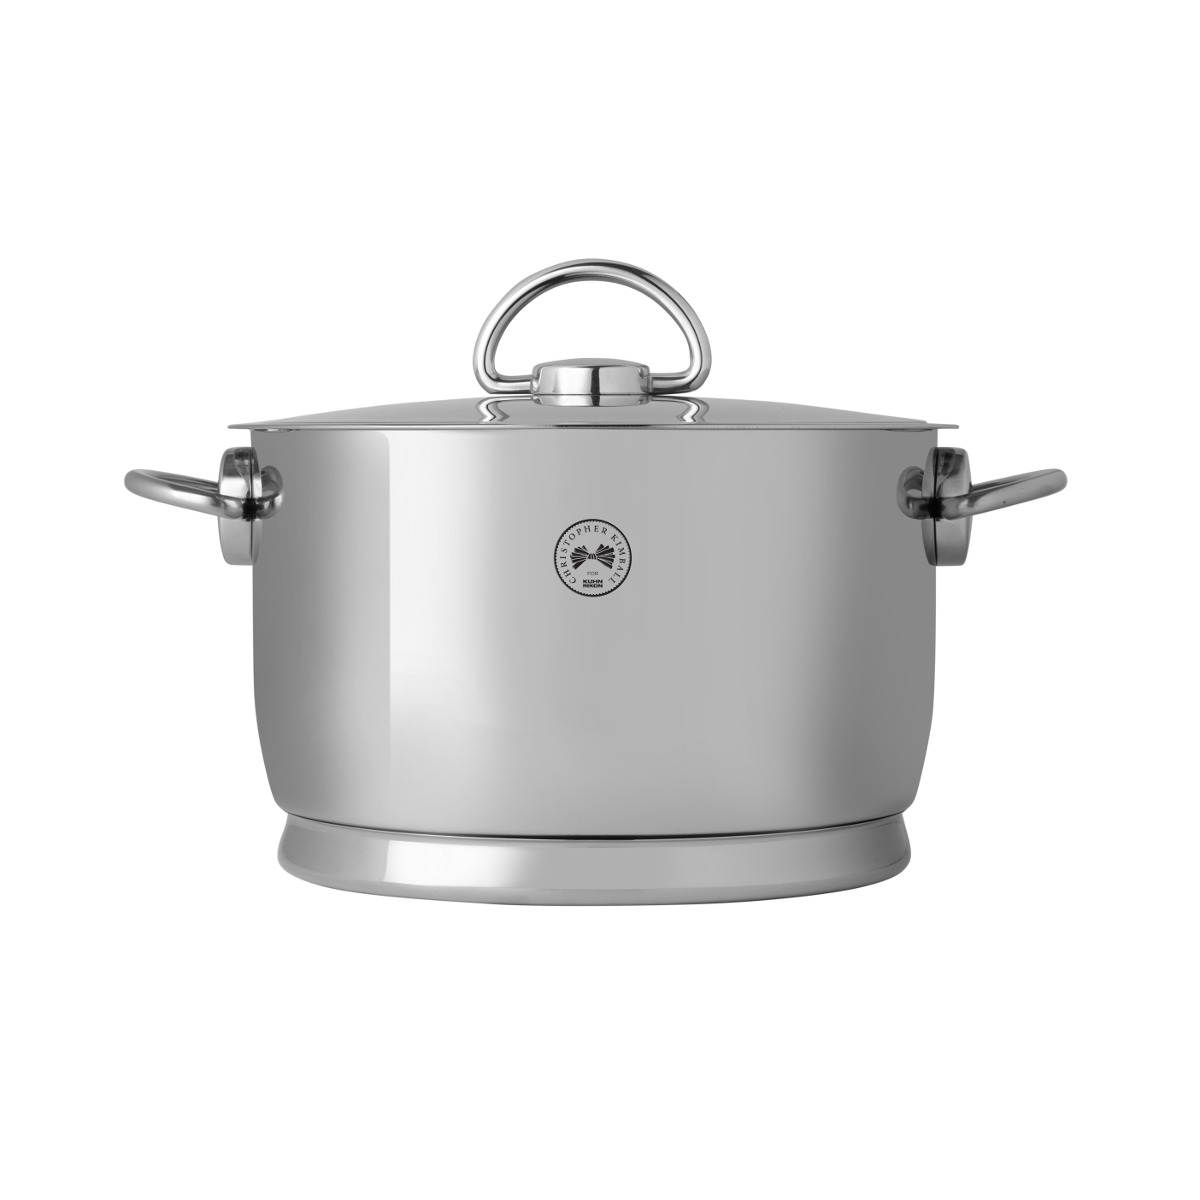 Christopher Kimball for Kuhn Rikon Stainless Steel 5.3 Quart Durotherm Hold and Serve Dutch Oven with Lid